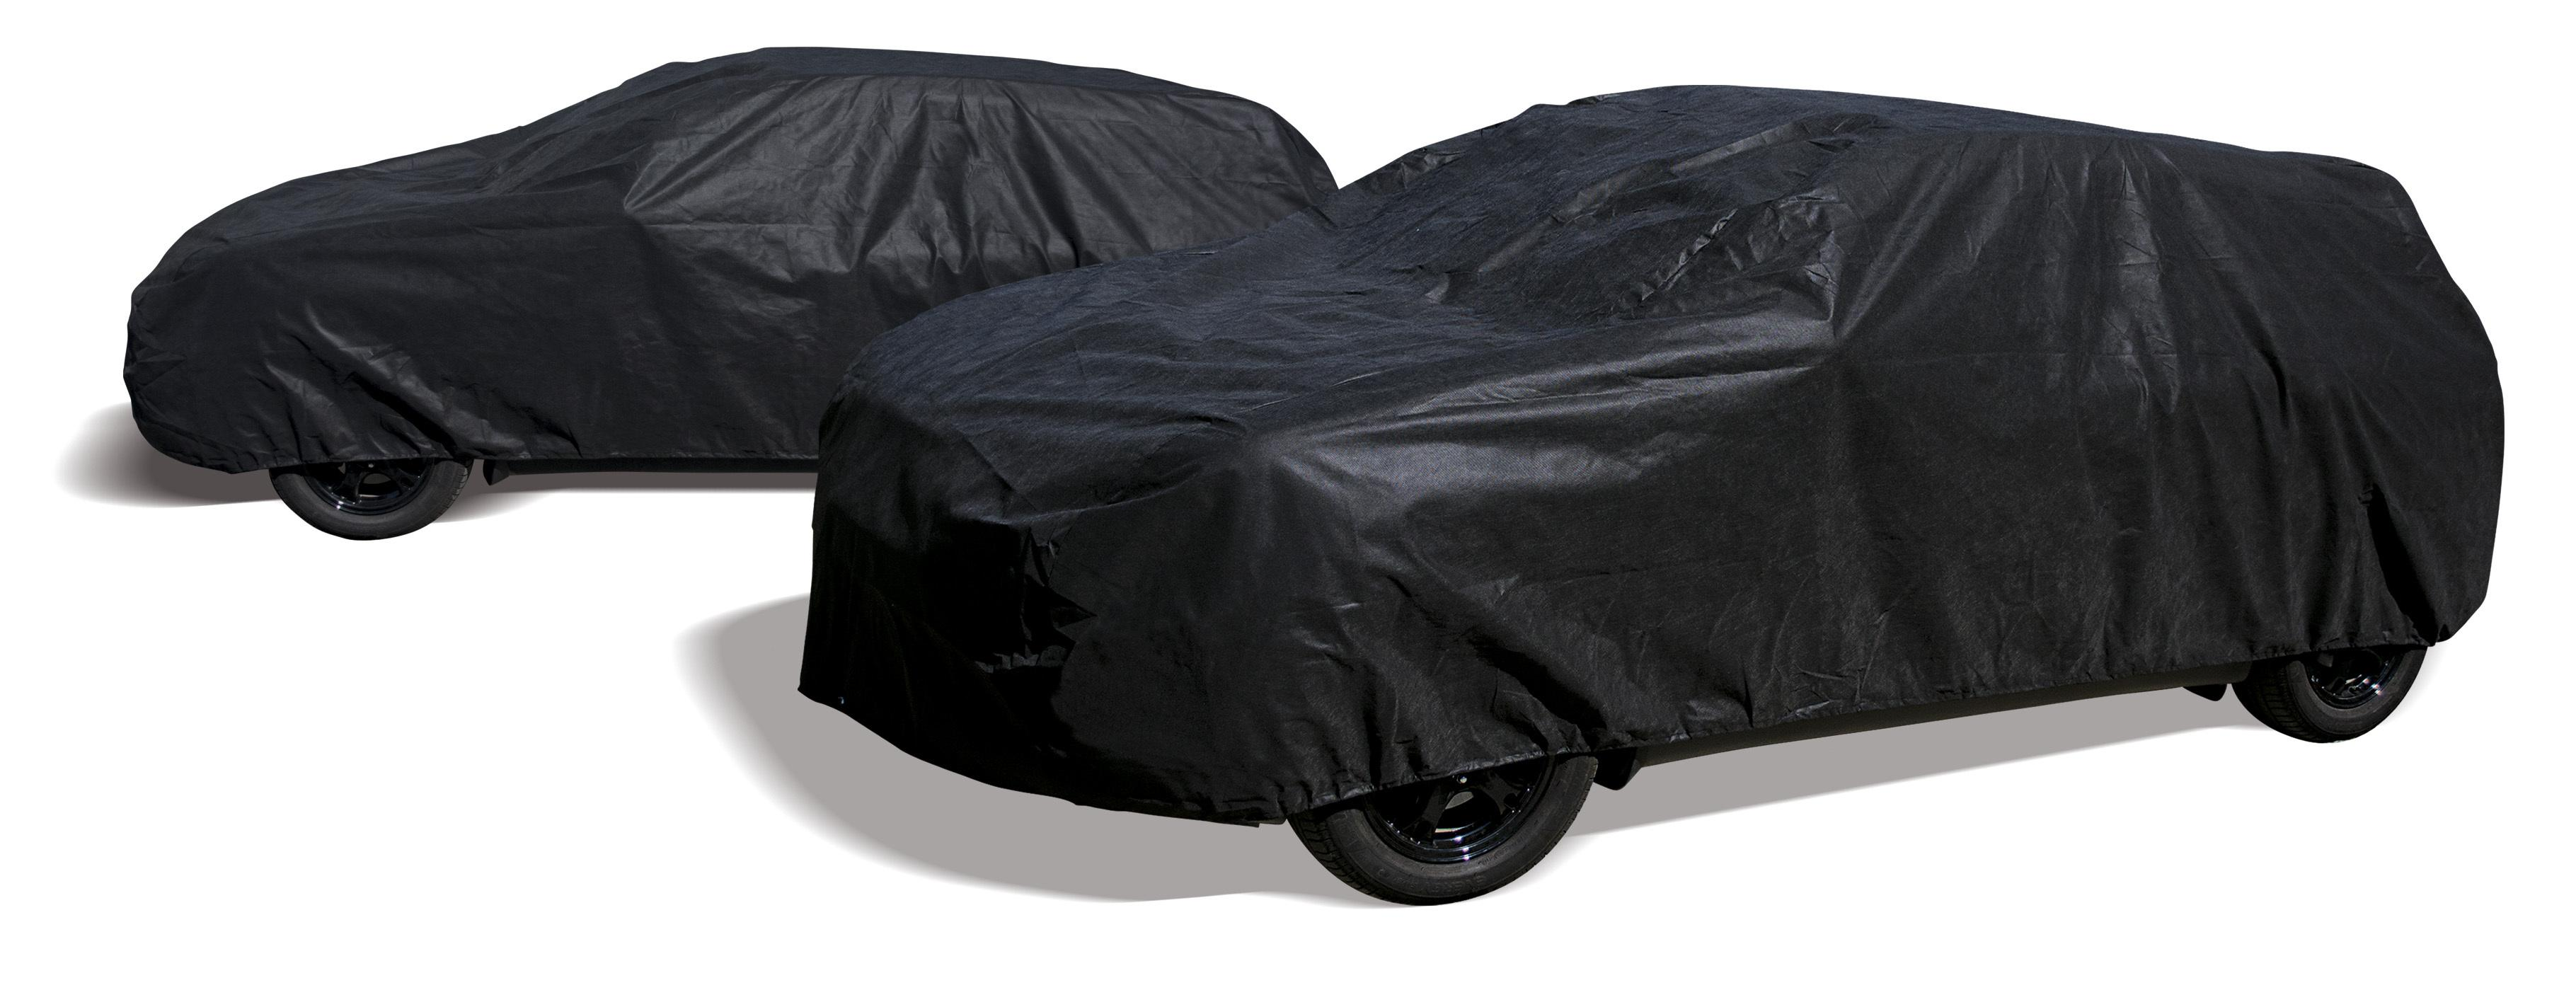 Car cover CARPASSION 10022 expert knowledge